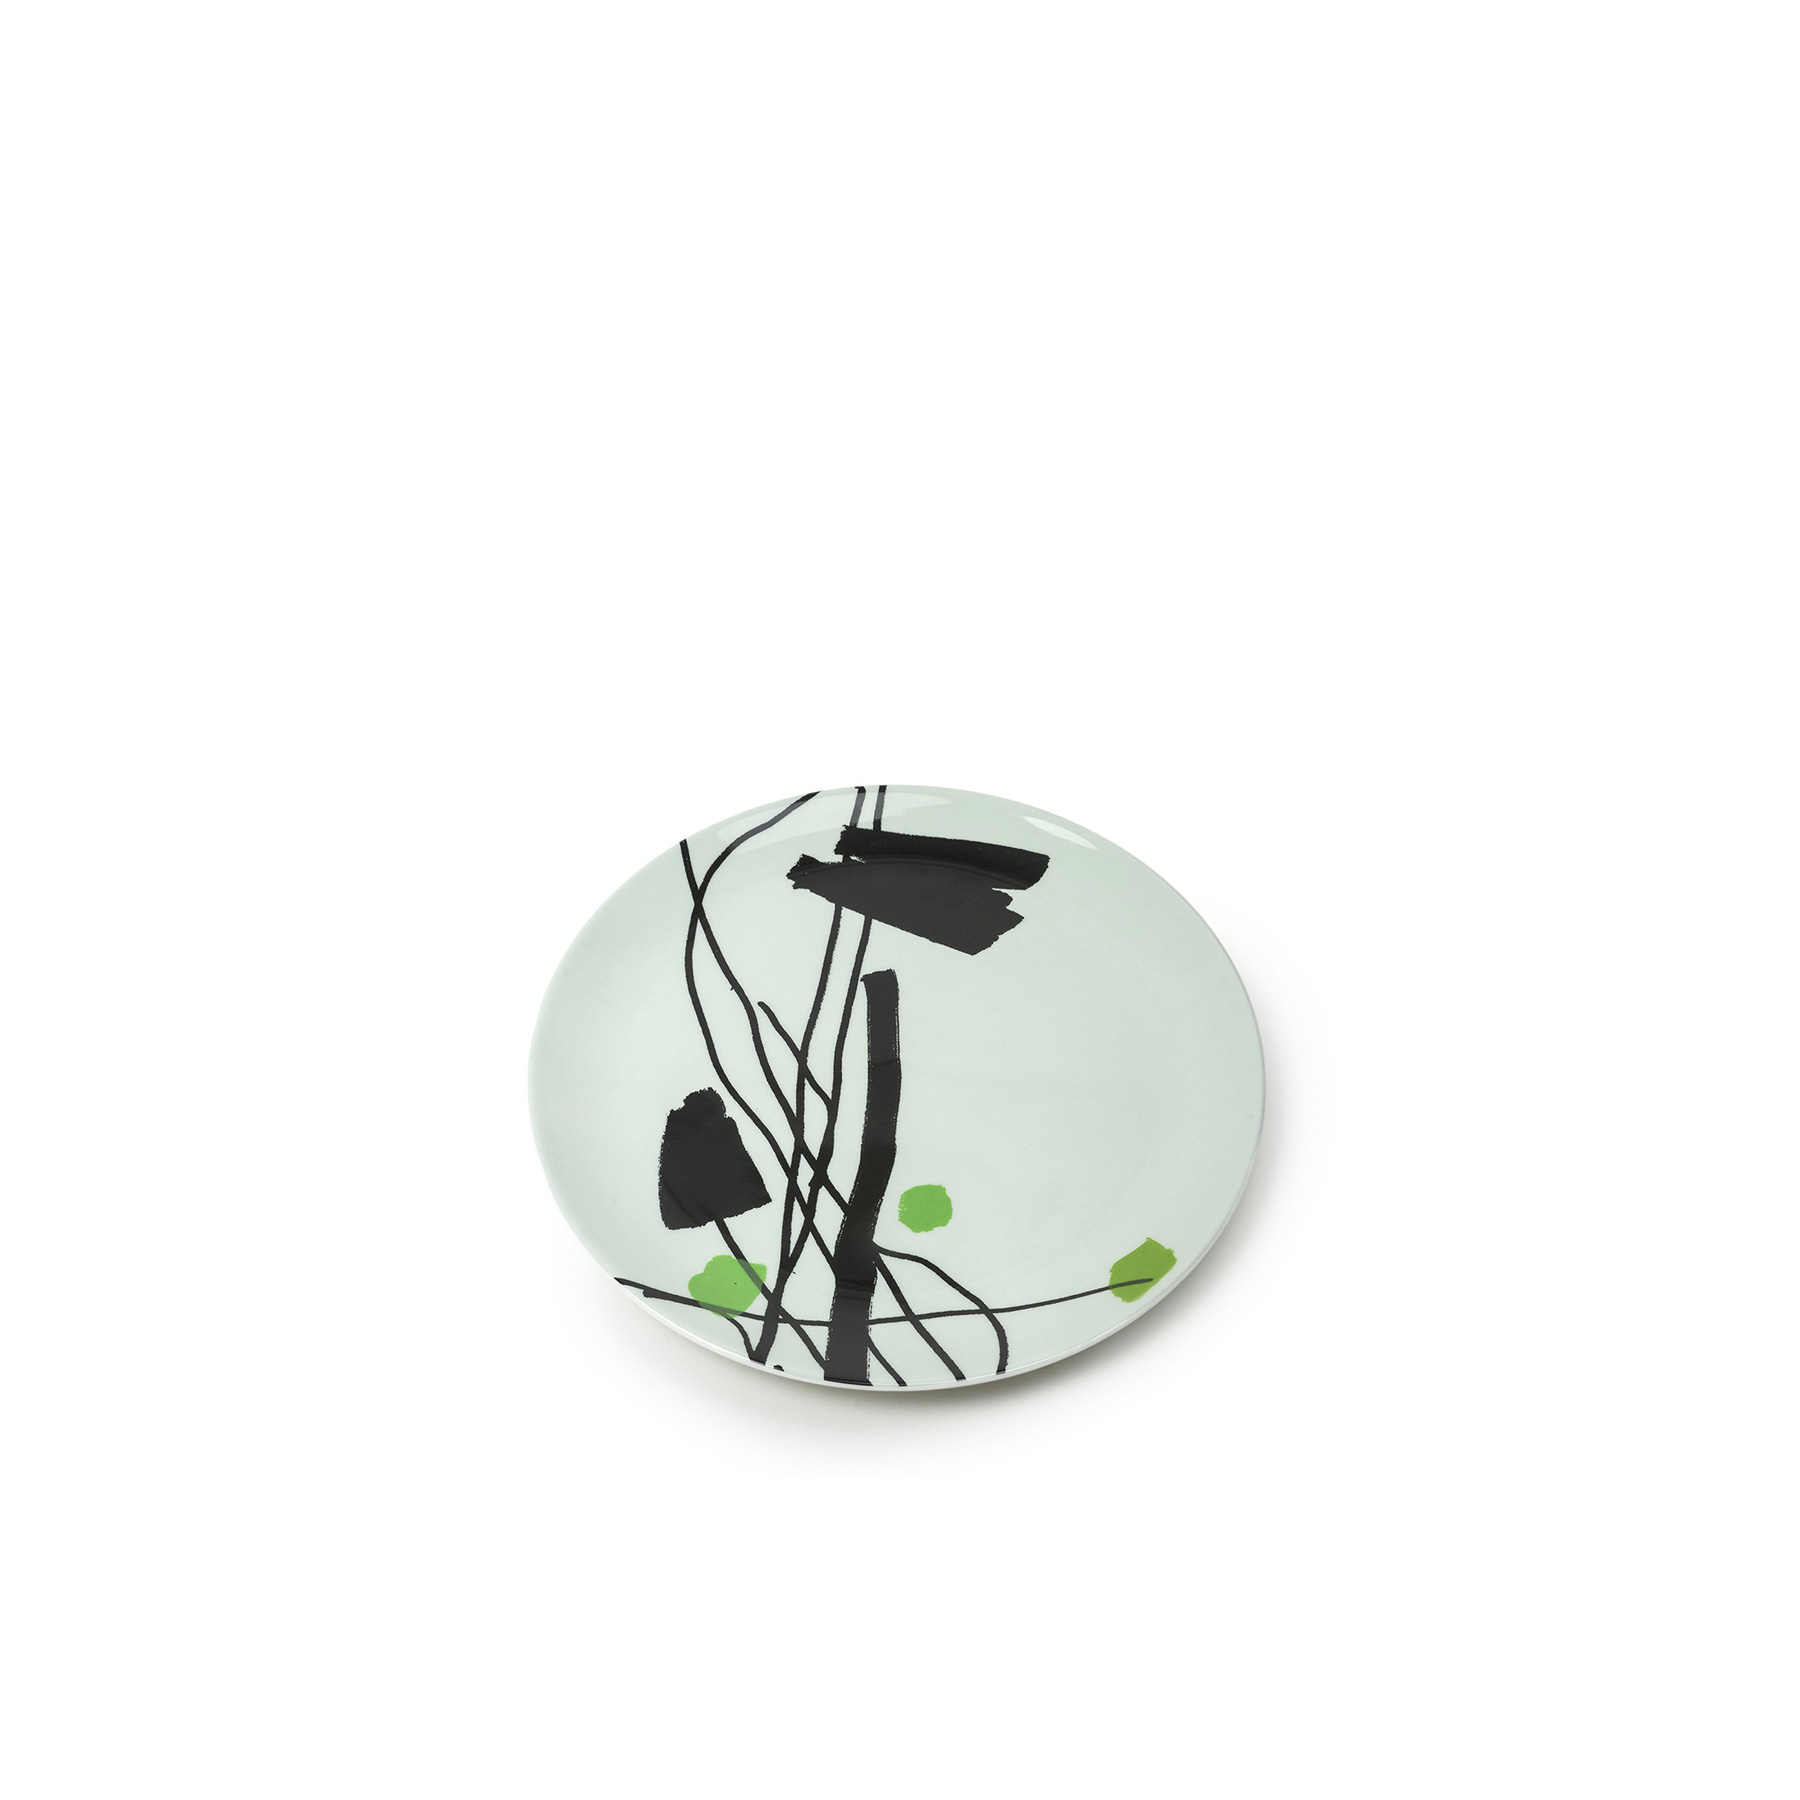 Garden Ware Plate 5 - Acclaimed conceptual artist Bruce McLean created a vast body of work titled Garden Ware that was on exhibition at the Victoria and Albert Museum in London 2017. The collection included one-off earthenware creations by McLean, including vases, bowls, platters. Stemming from the series of 50 Platters, McLean selected 4 artworks that have been reproduced as silk screen decals and now adorn dinner plates.  | Matter of Stuff